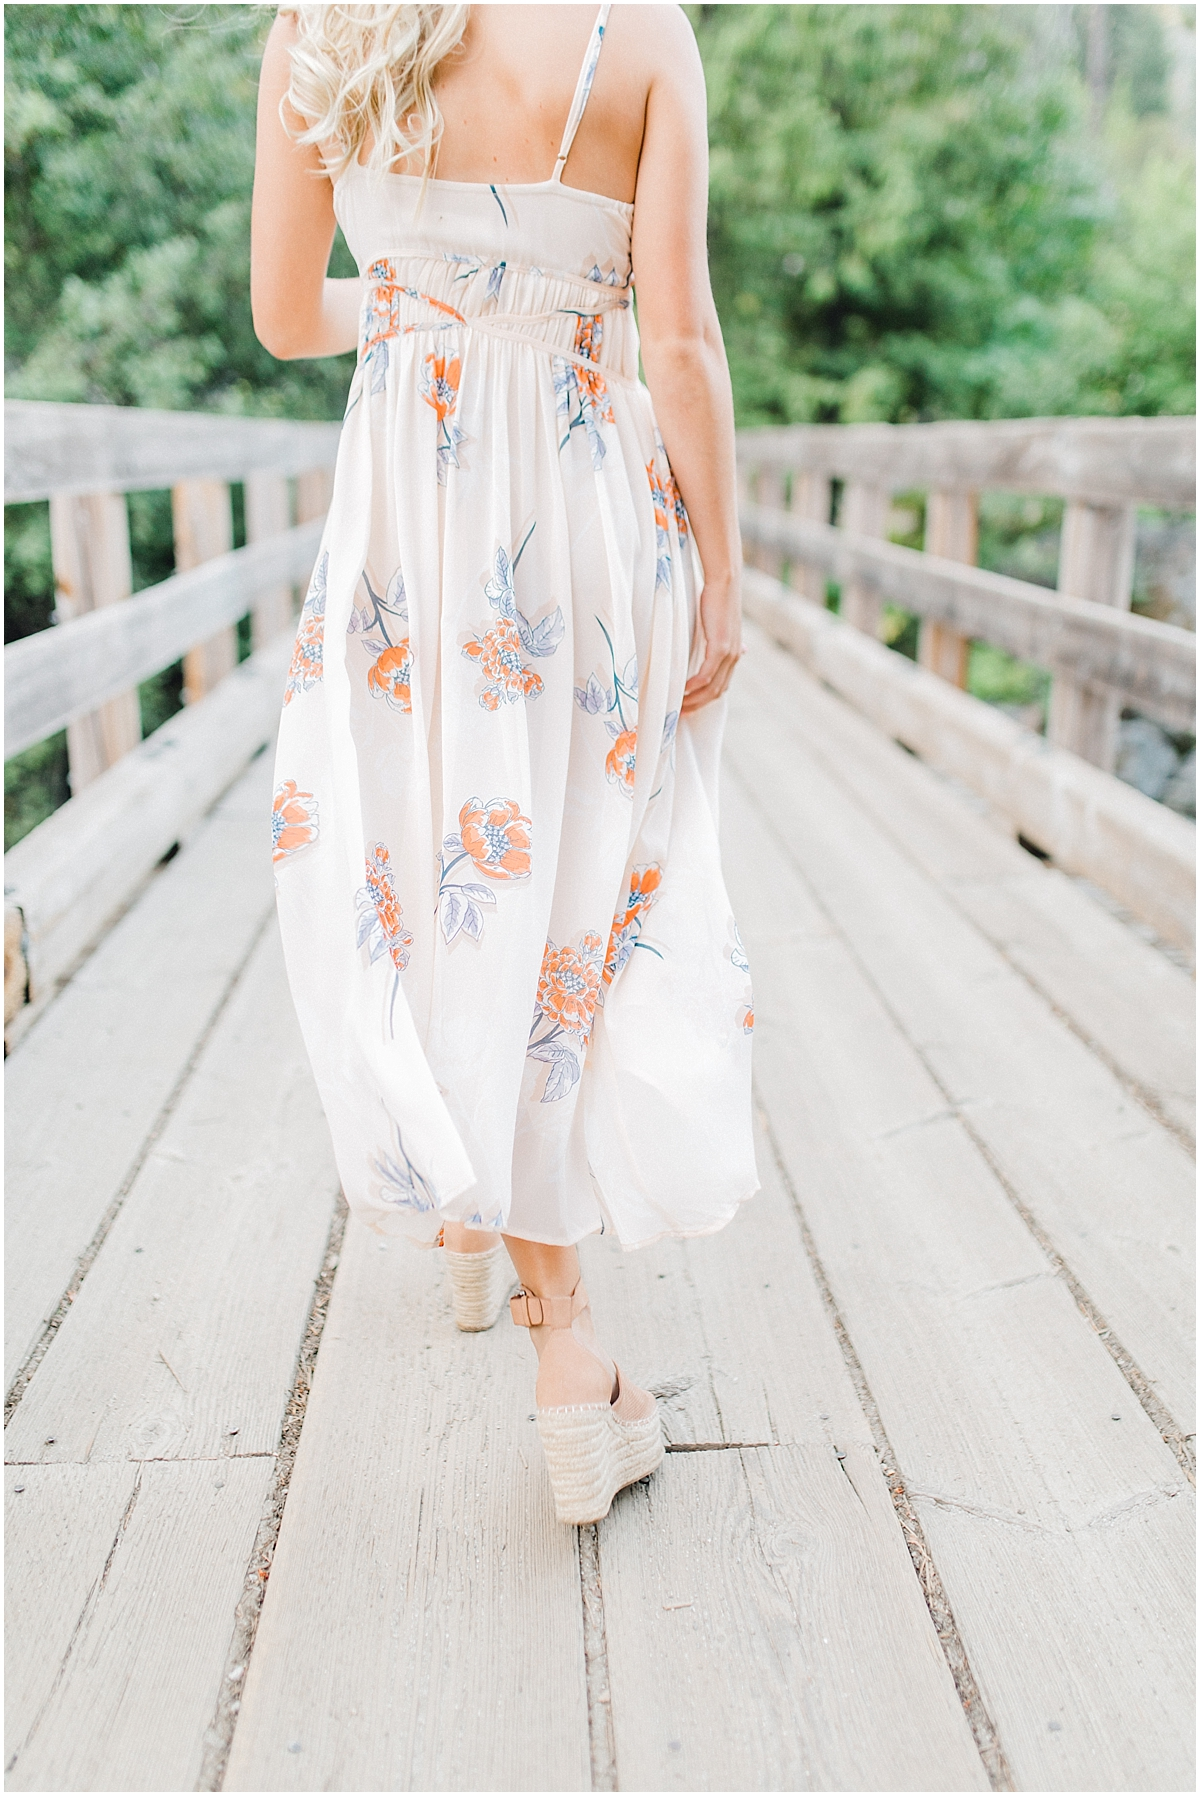 Emma Rose Company | Pacific Northwest Senior Portrait Photographer | Light and Airy Styled Senior Portraits | What to Wear to Senior Pictures | Kindred Presets | Seattle, Wenatchee and Portland Wedding and Portrait Photographer | Emma Rose4.jpg